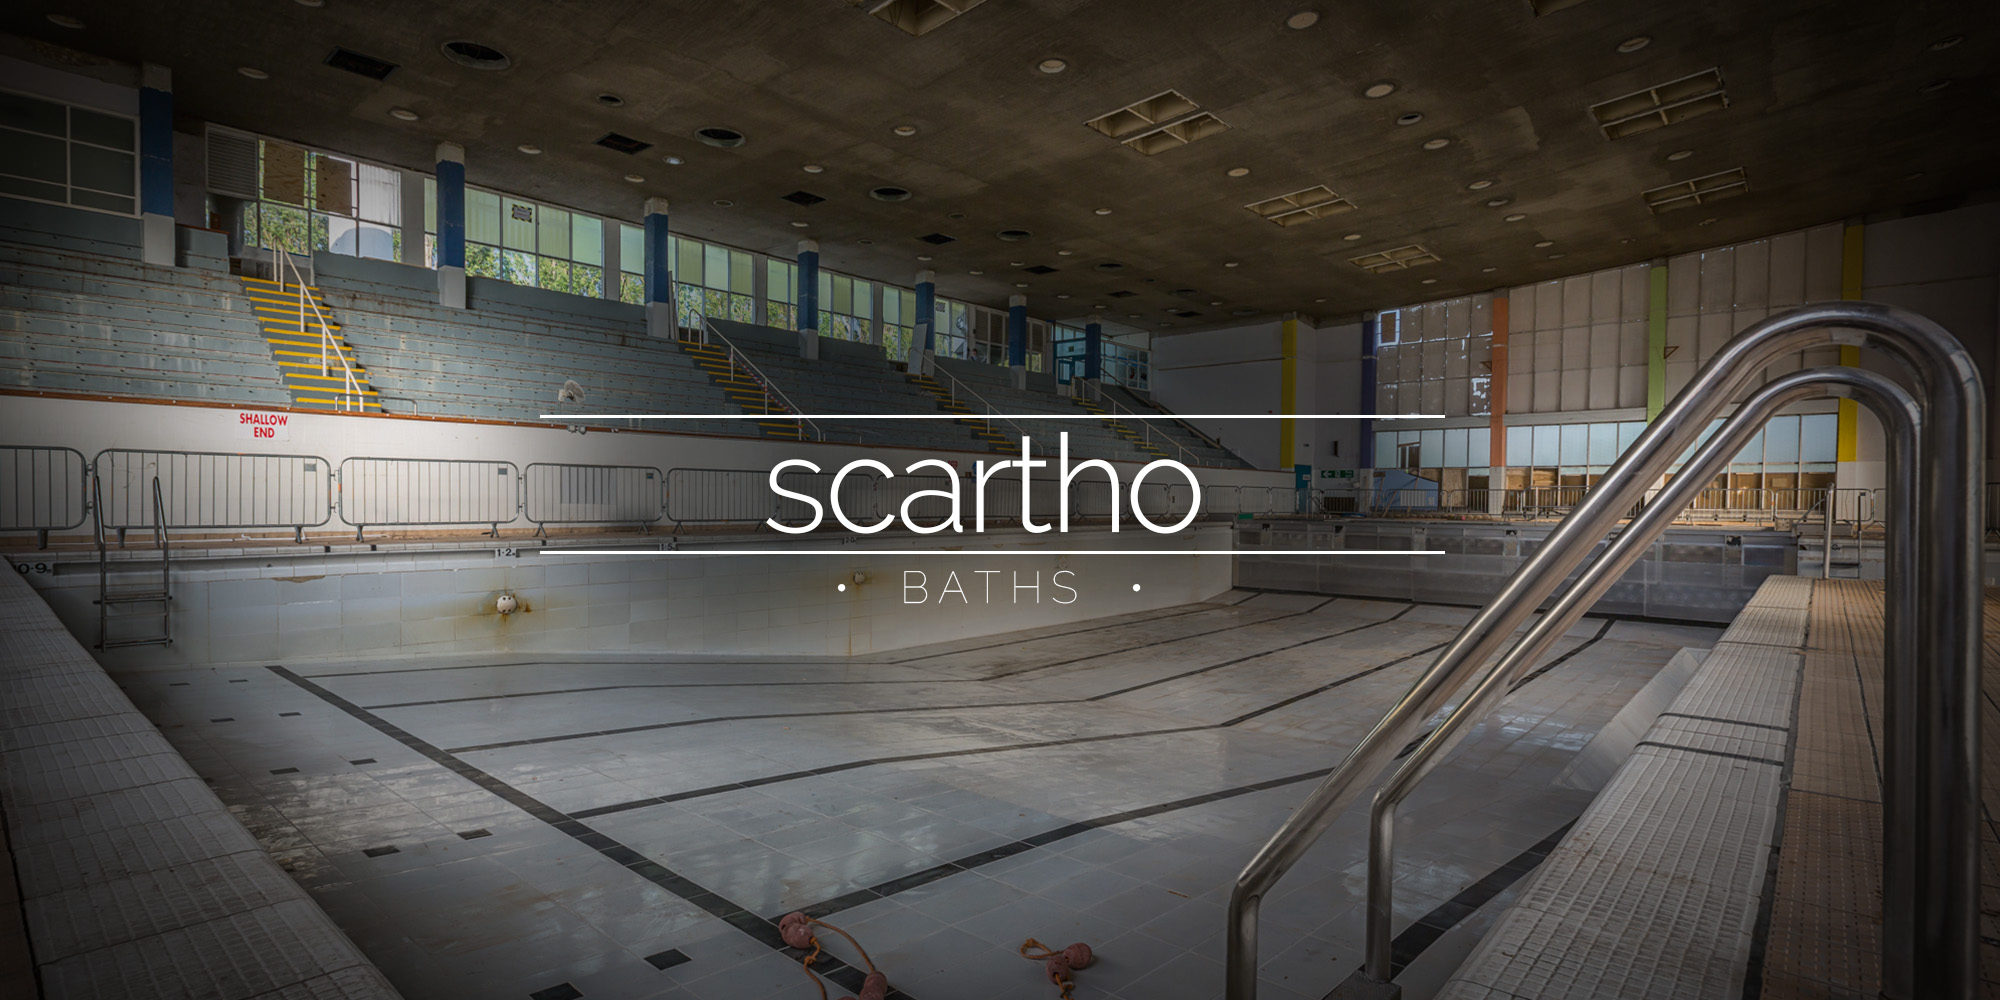 Scartho Baths Swimming Pool, Grimsby